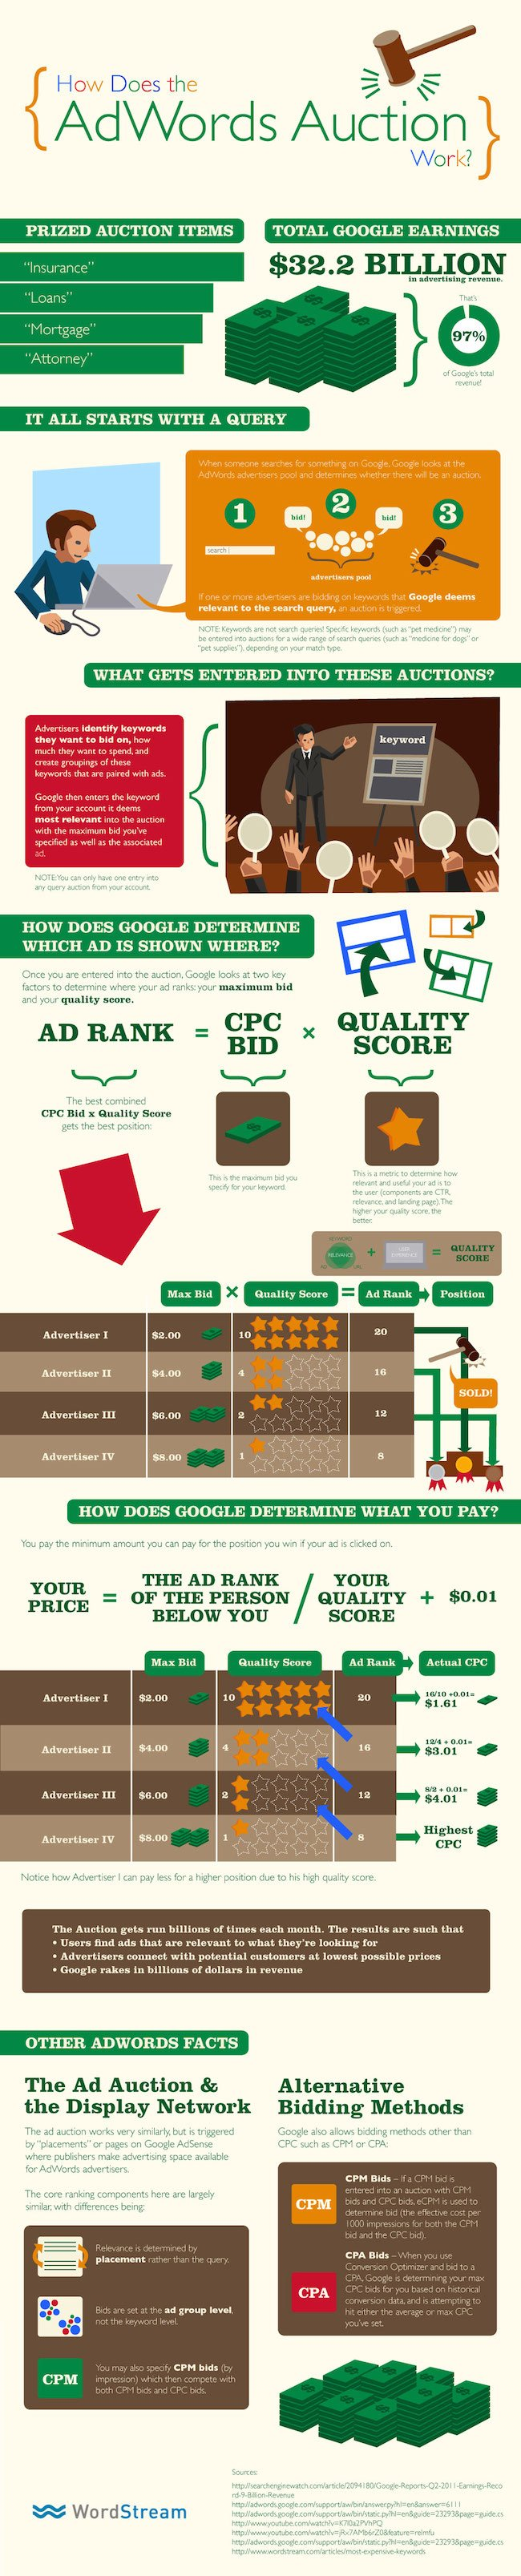 How Does Google Adwords Auction Work